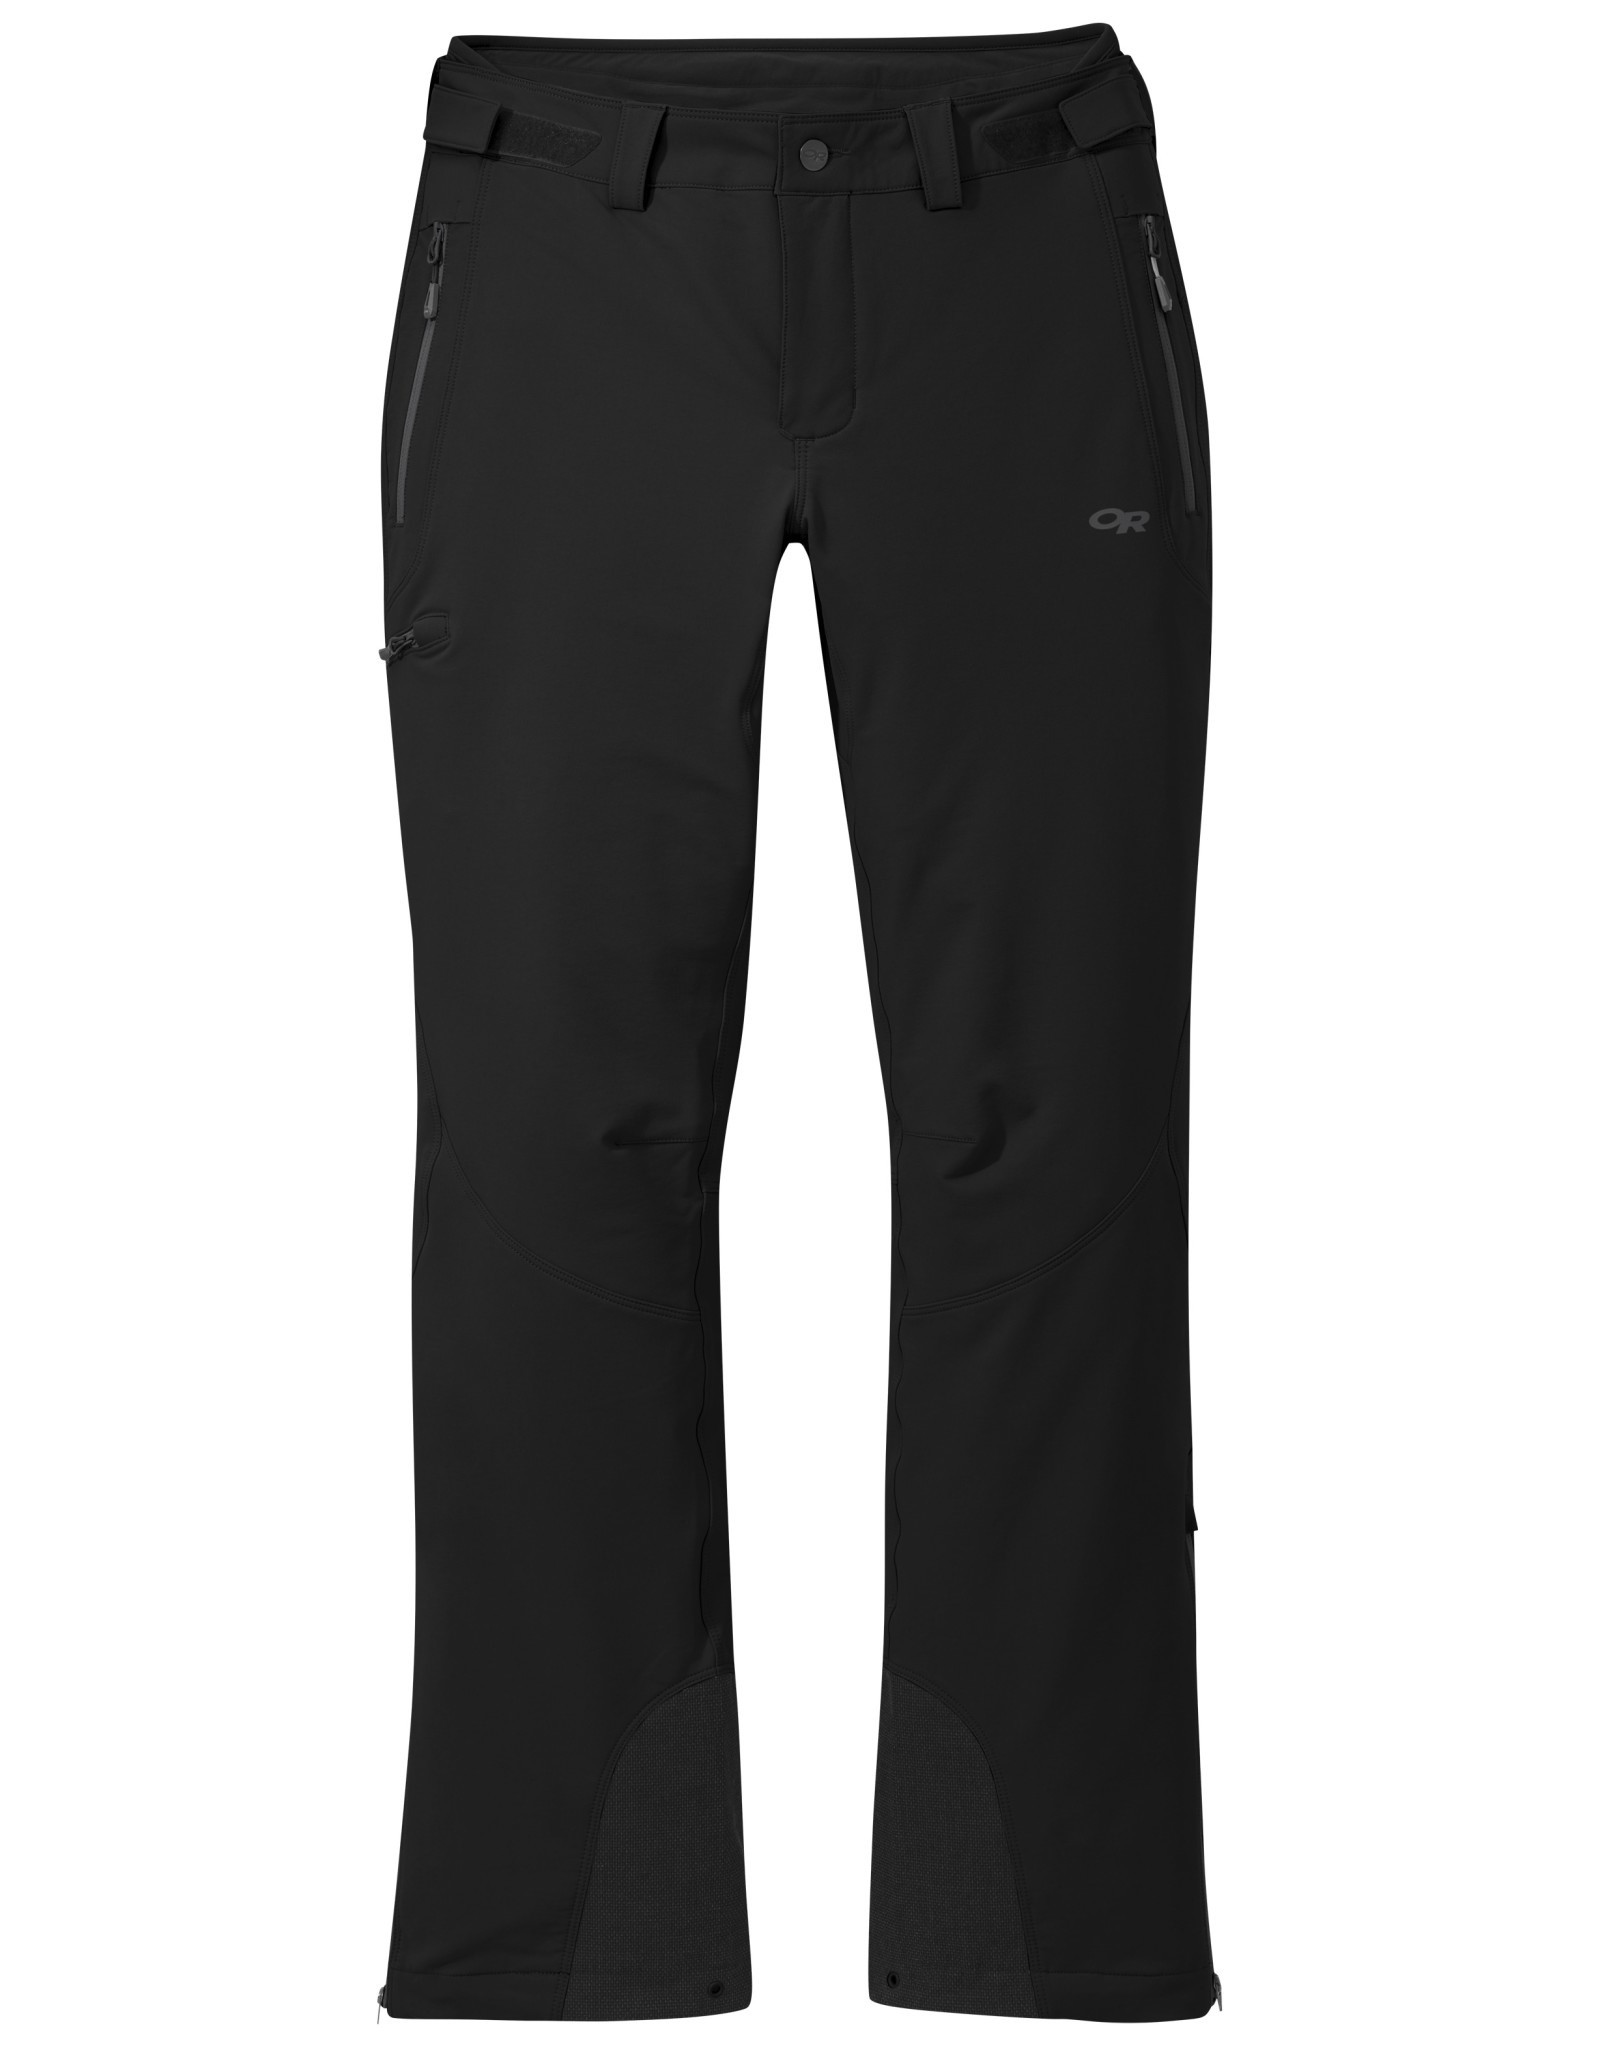 Outdoor Research Outdoor Research W's Cirque II Pant